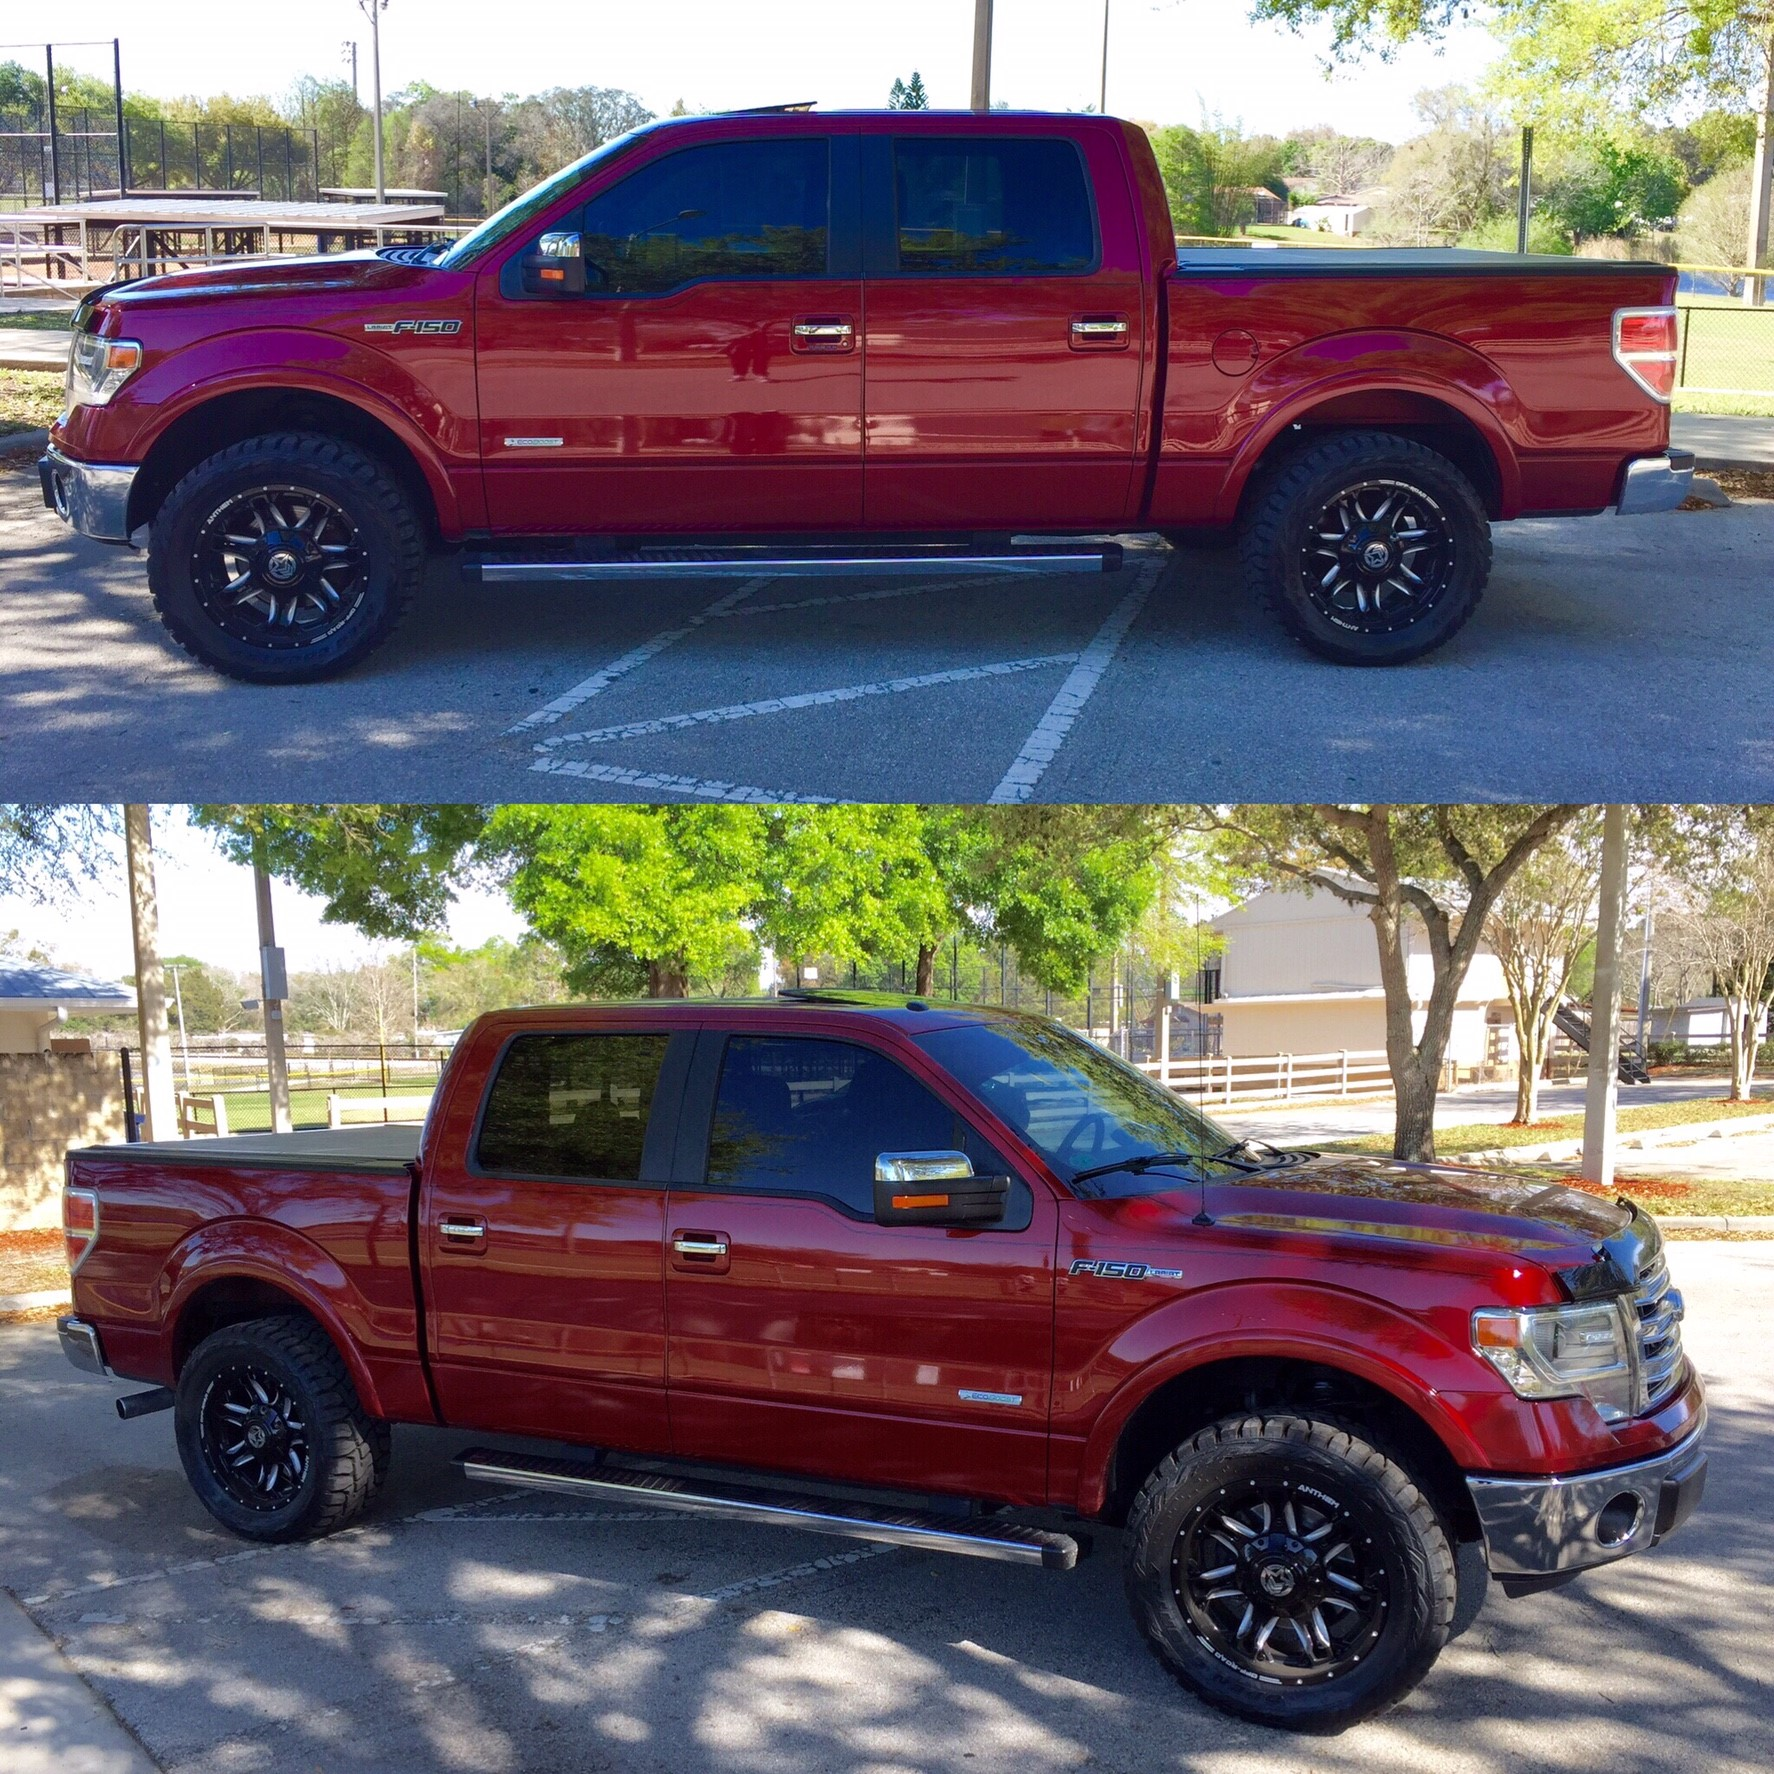 Blacked Out Ford F150 2019 2020 New Car Price And Reviews Circuit Board Pickup Truck Bronco Interior Dash Instrument Chrome Or Black Rims On A 2014 Ruby Red